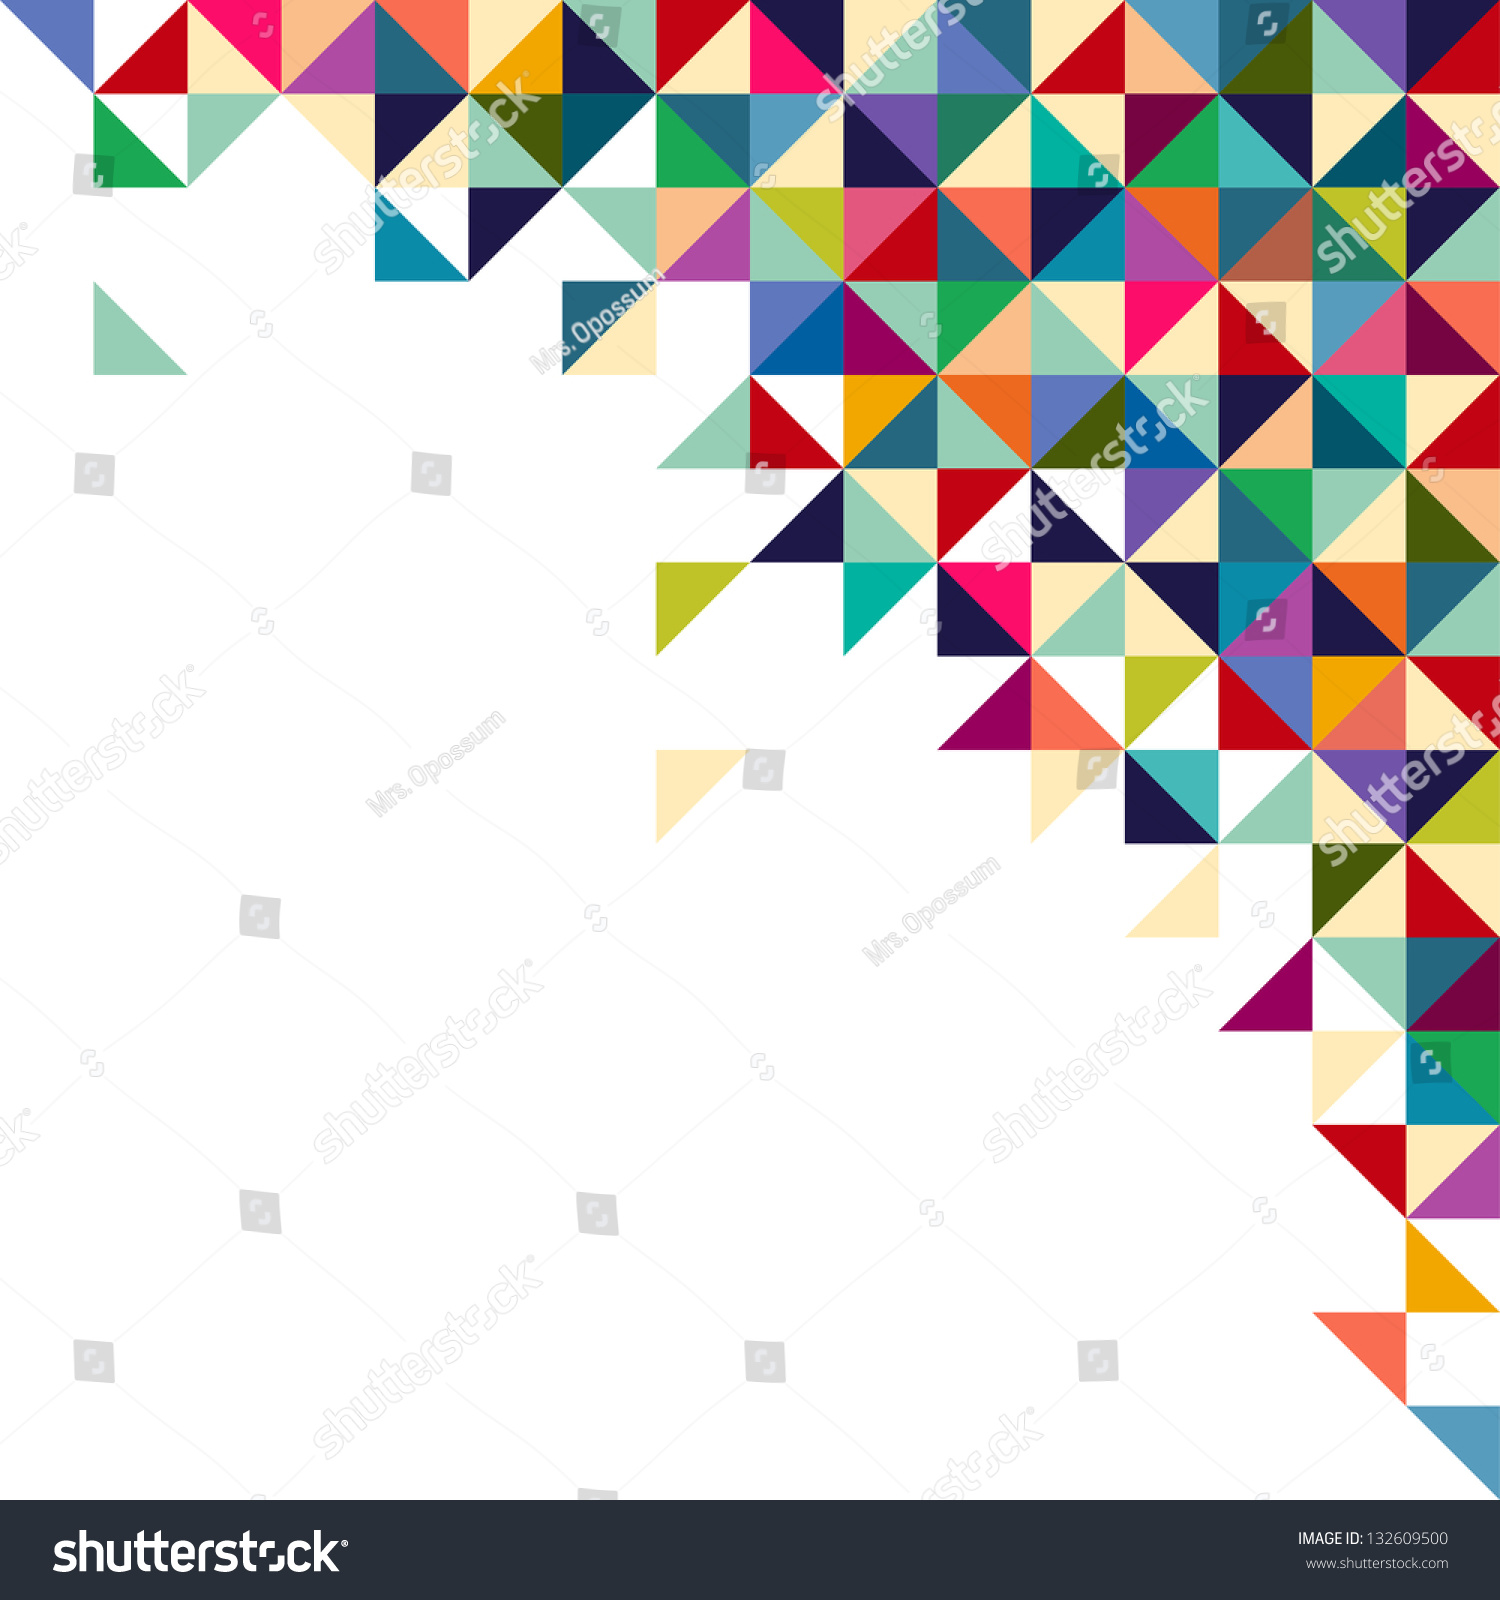 Abstract Geometric Background Triangle Square Colorful